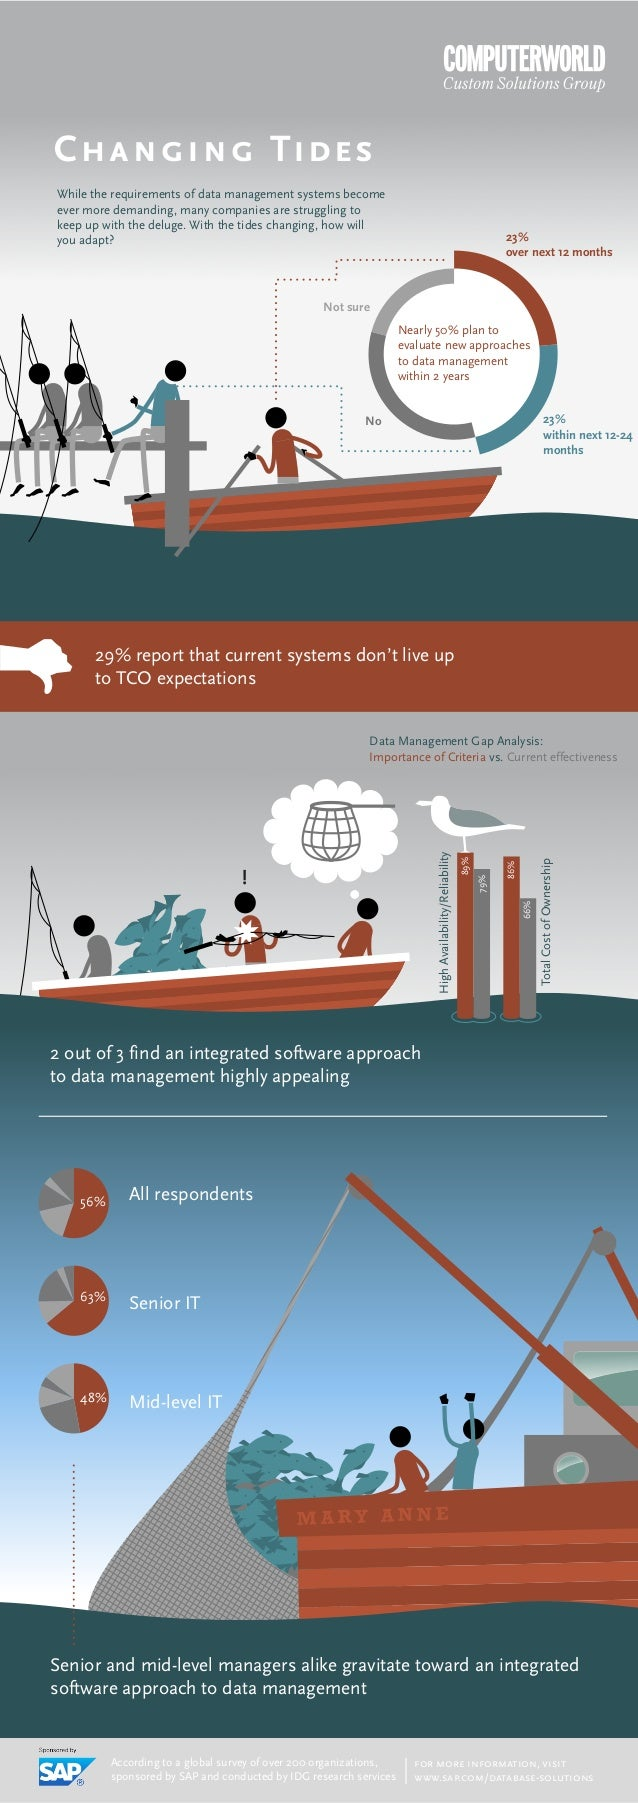 29% report that current systems don't live upto TCO expectations2 out of 3 find an integrated software approachto data man...